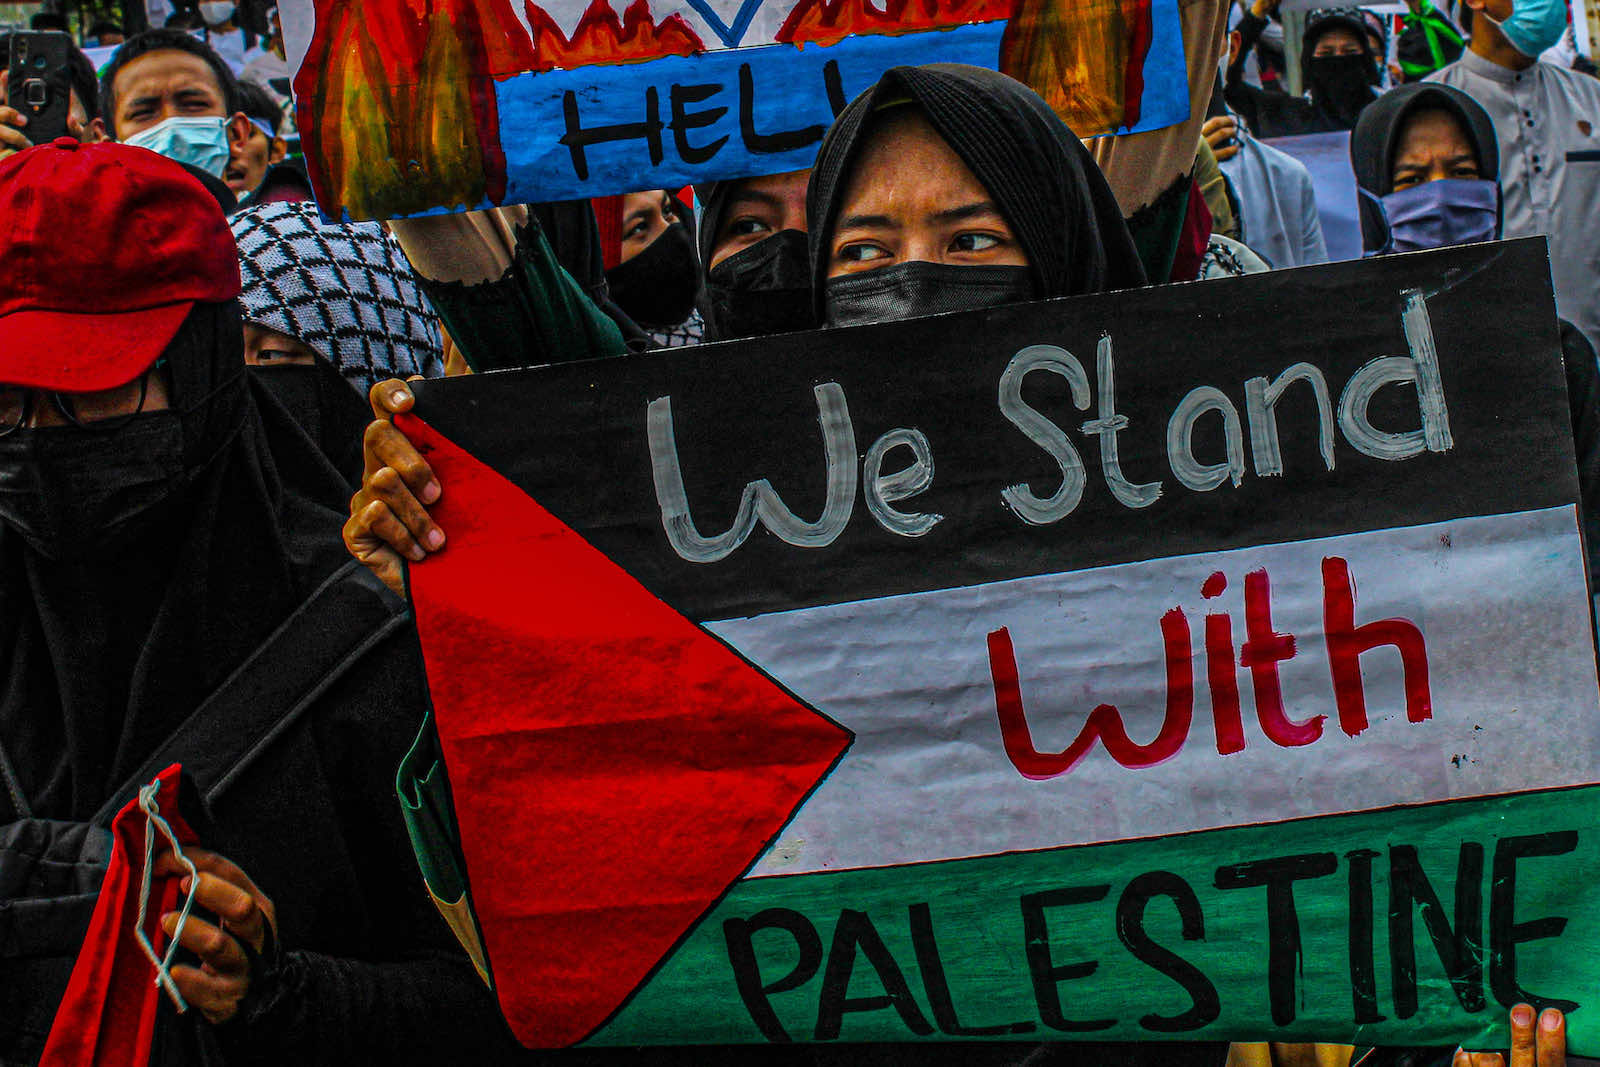 Demonstration in Jakarta in support of Palestinians, 21 May (Fazjri Abdillah/Riau Images/Barcroft Media via Getty Images)